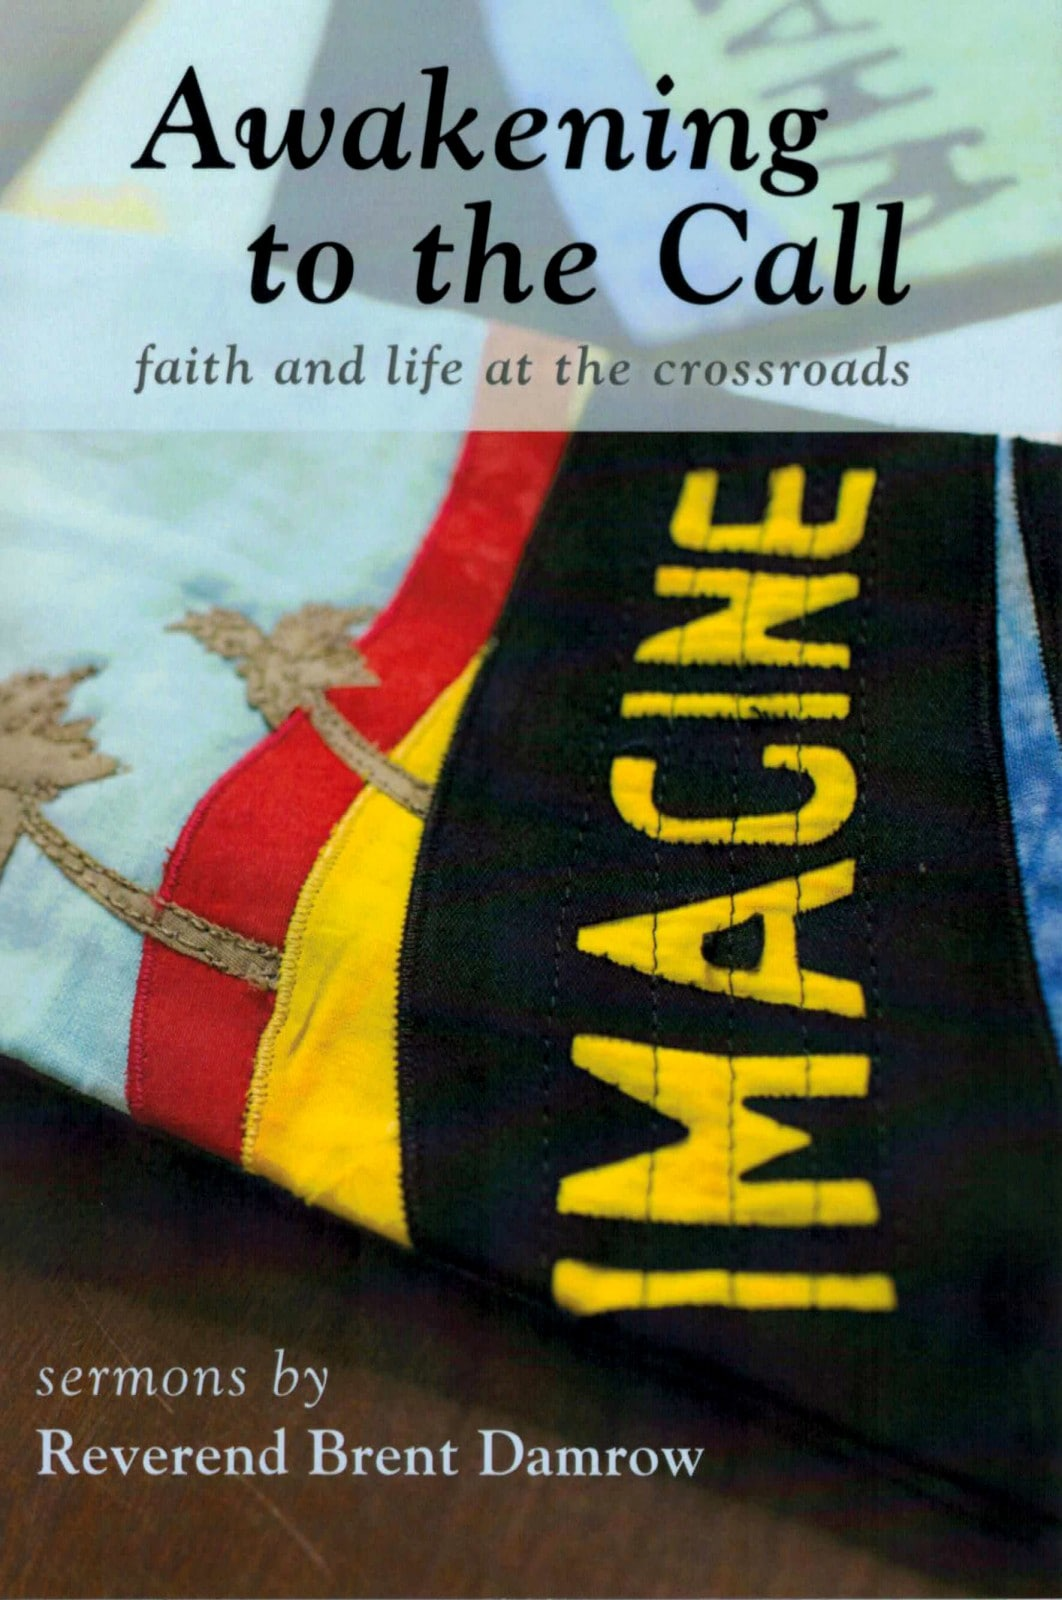 Book cover image: Awakening to the Call: Faith and Life at the Crossroads. sermons by Reverend Brent Damrow